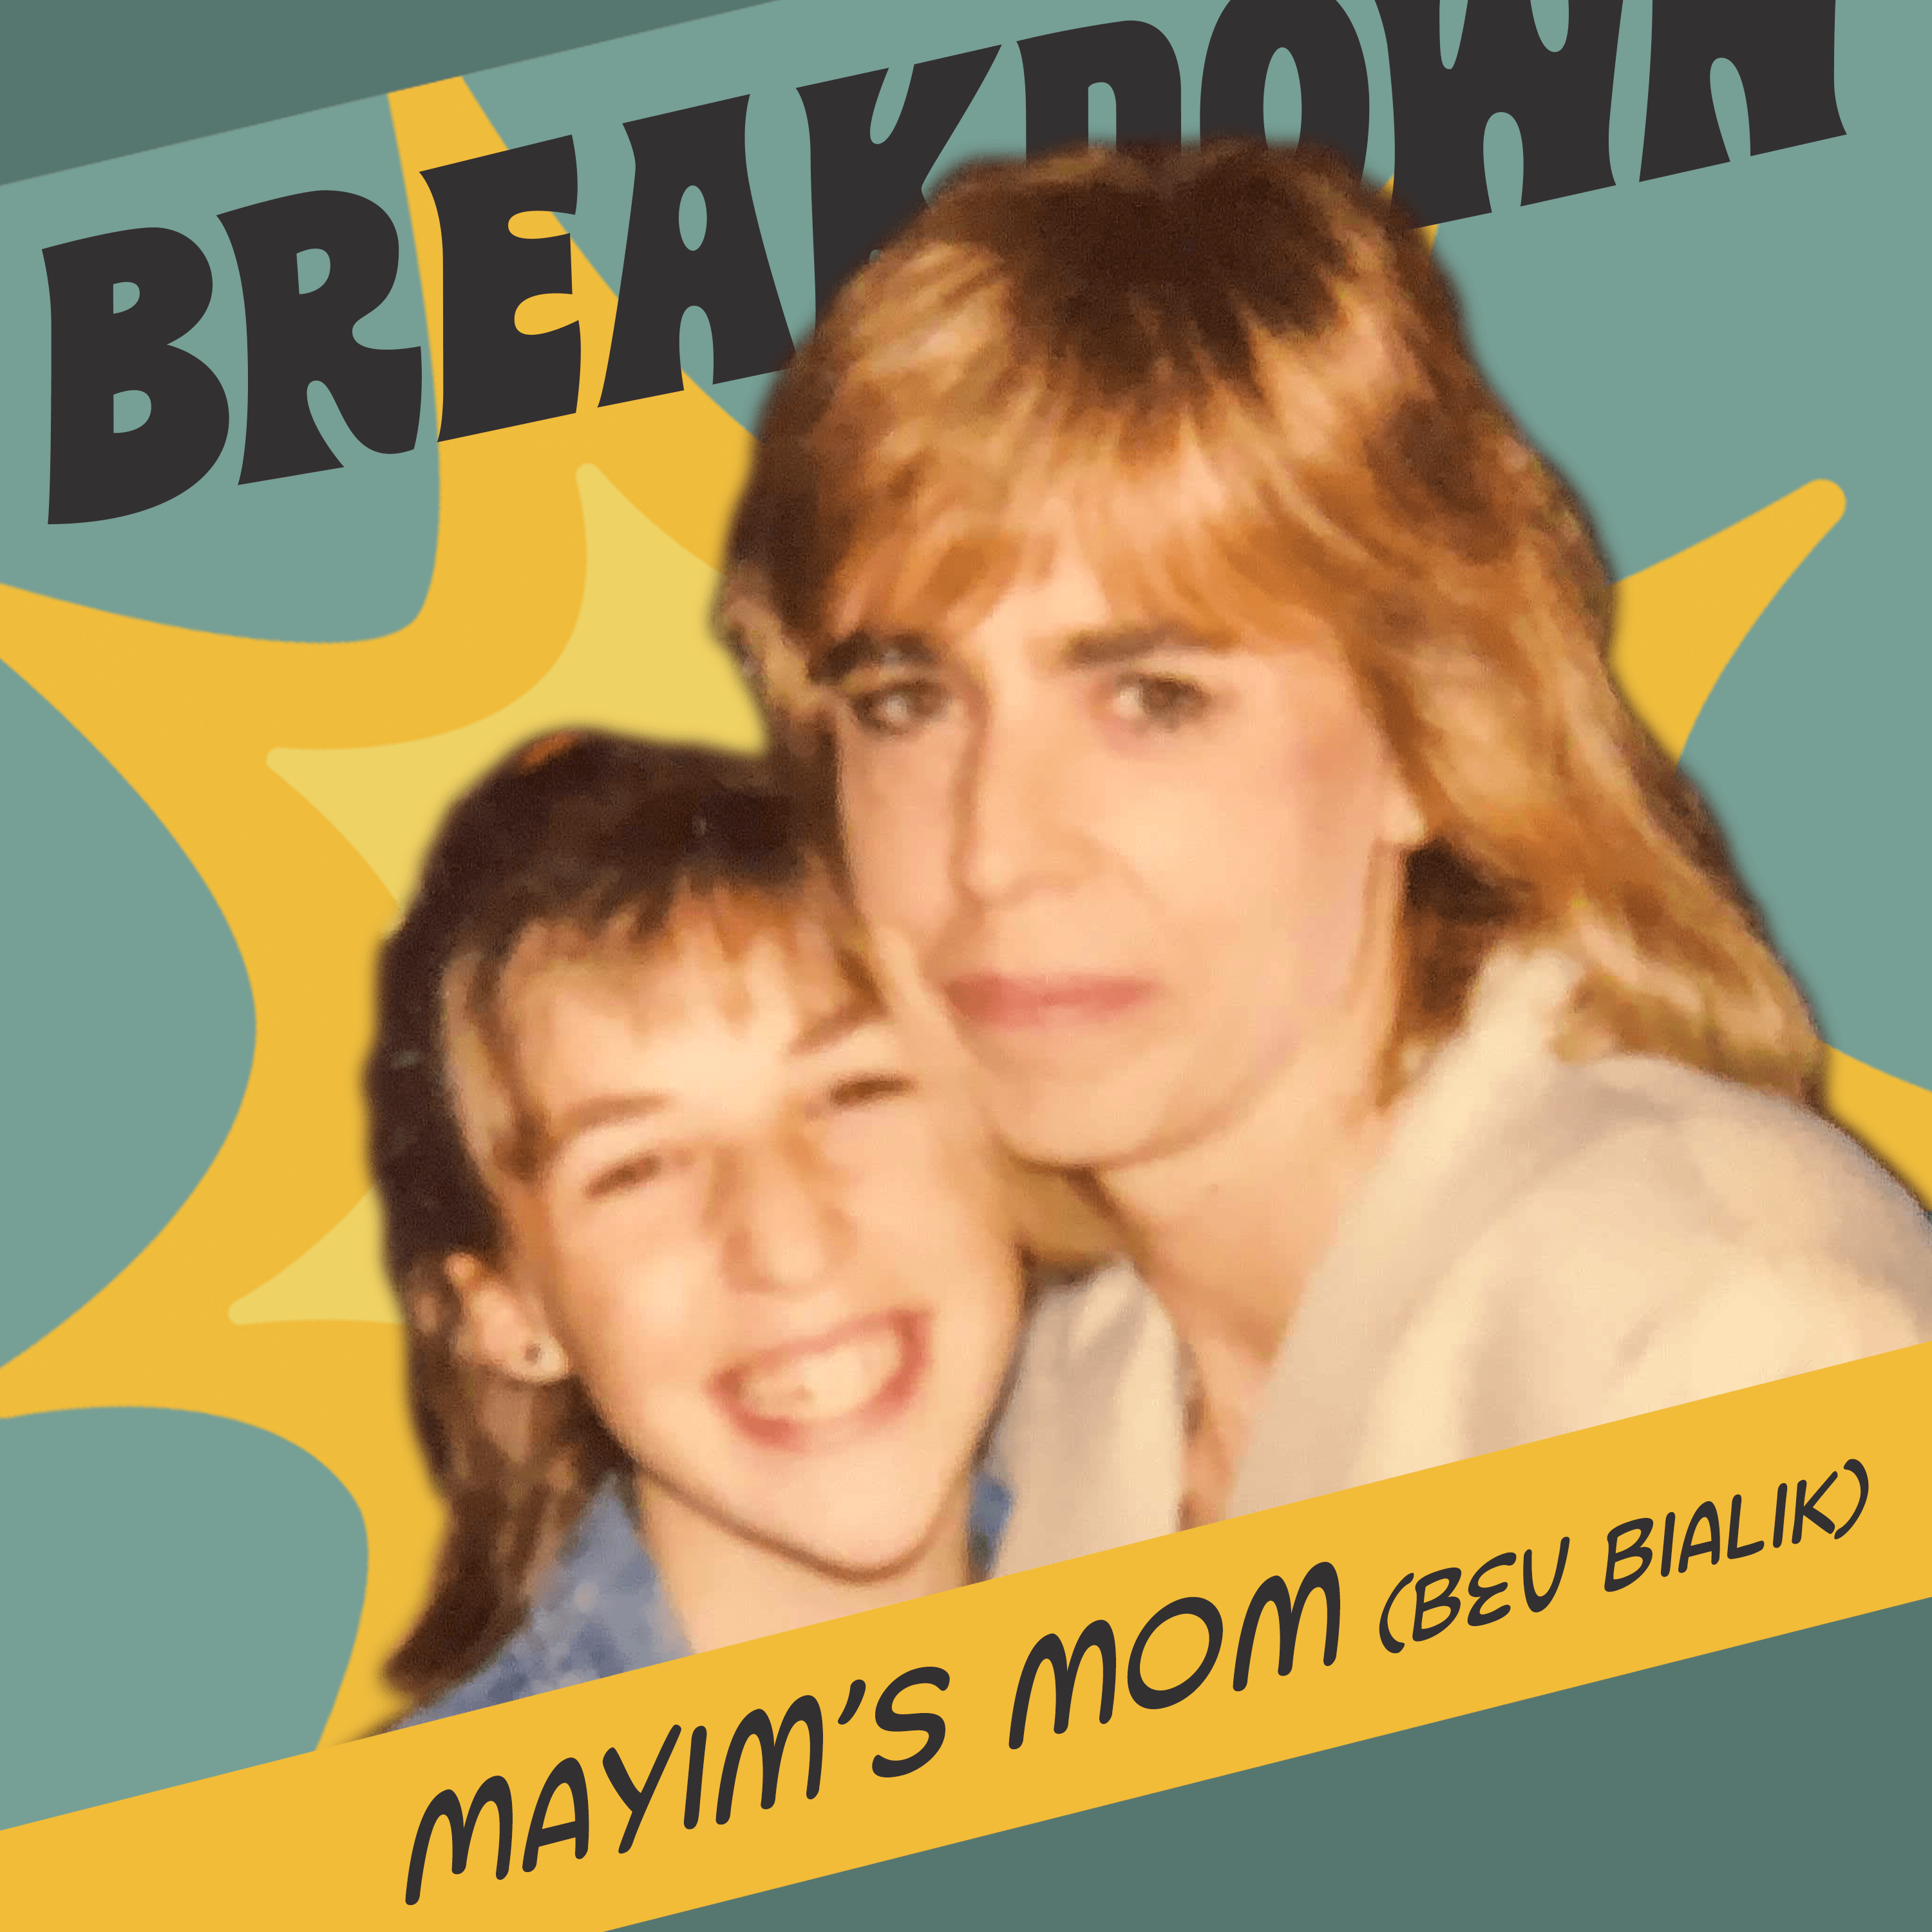 Bevisode with Mayim's Mom! Mindfulness, Self Esteem & Psychedelic Experiences